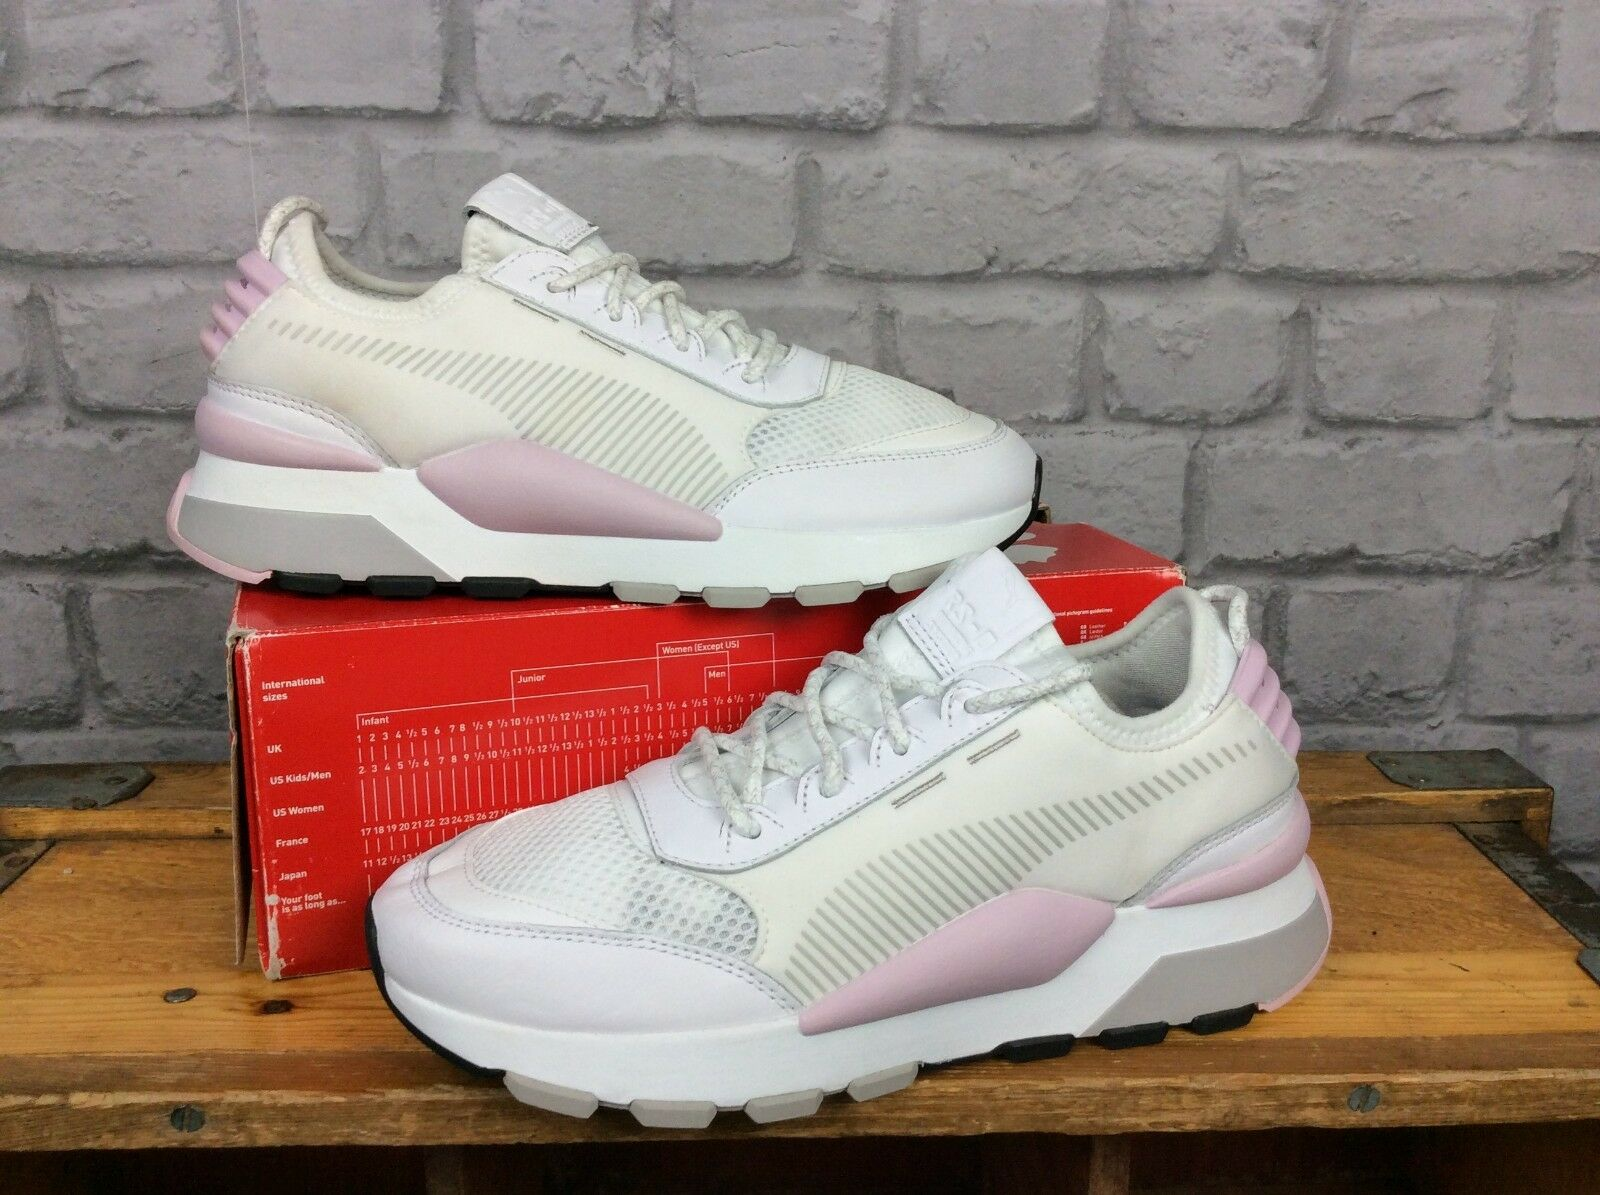 PUMA LADIES UK 6 EU 39 Wei  PINK GREY RS-0 PLAY RUNNING TRAINERS